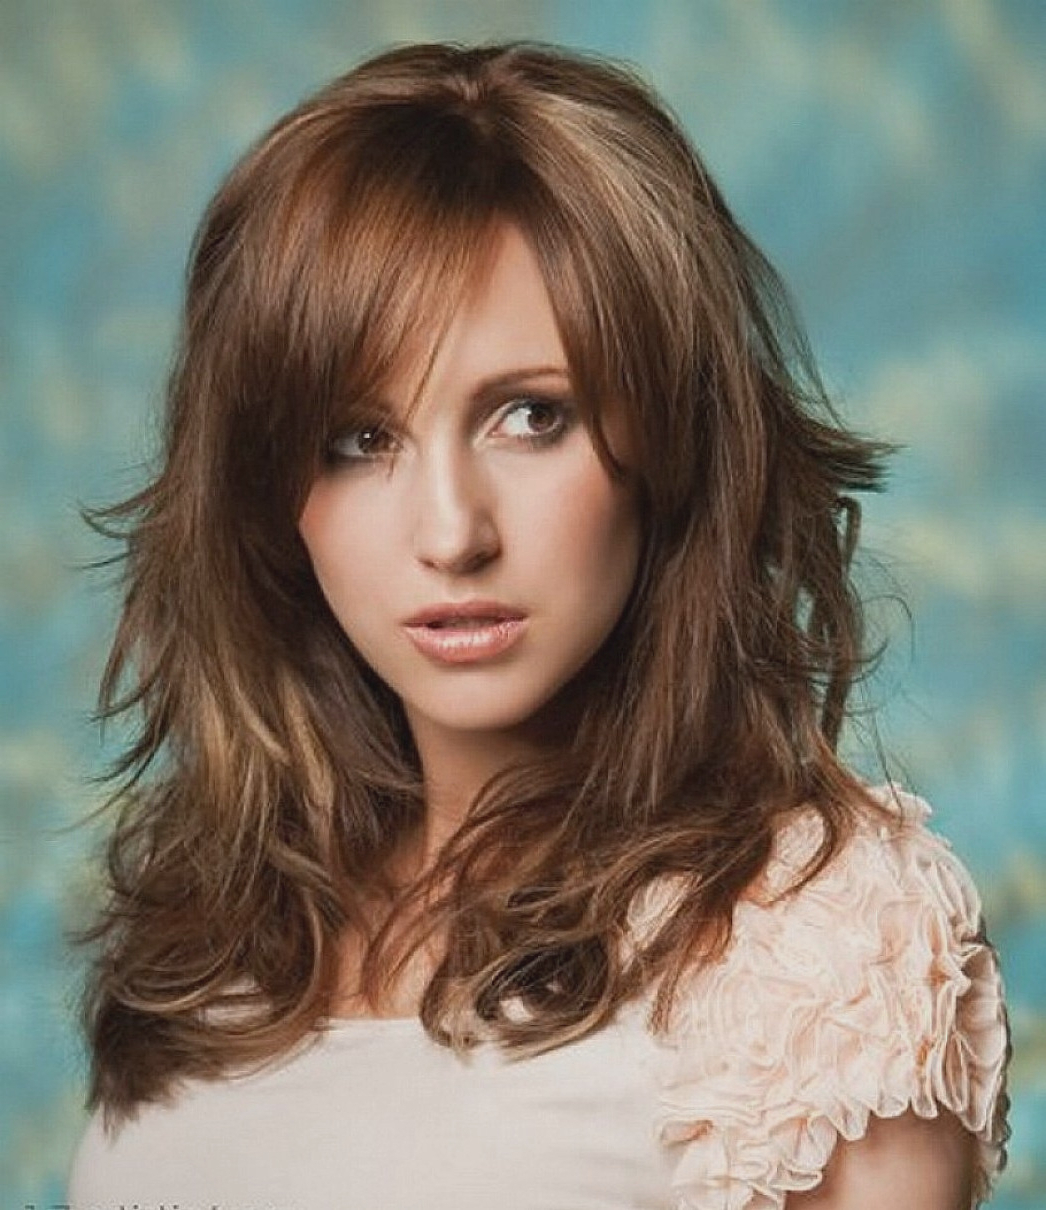 Haircut : Top Medium Length Haircuts Thick Wavy Hair Images Home With Recent Medium Haircuts For Thick Wavy Hair (Gallery 18 of 20)